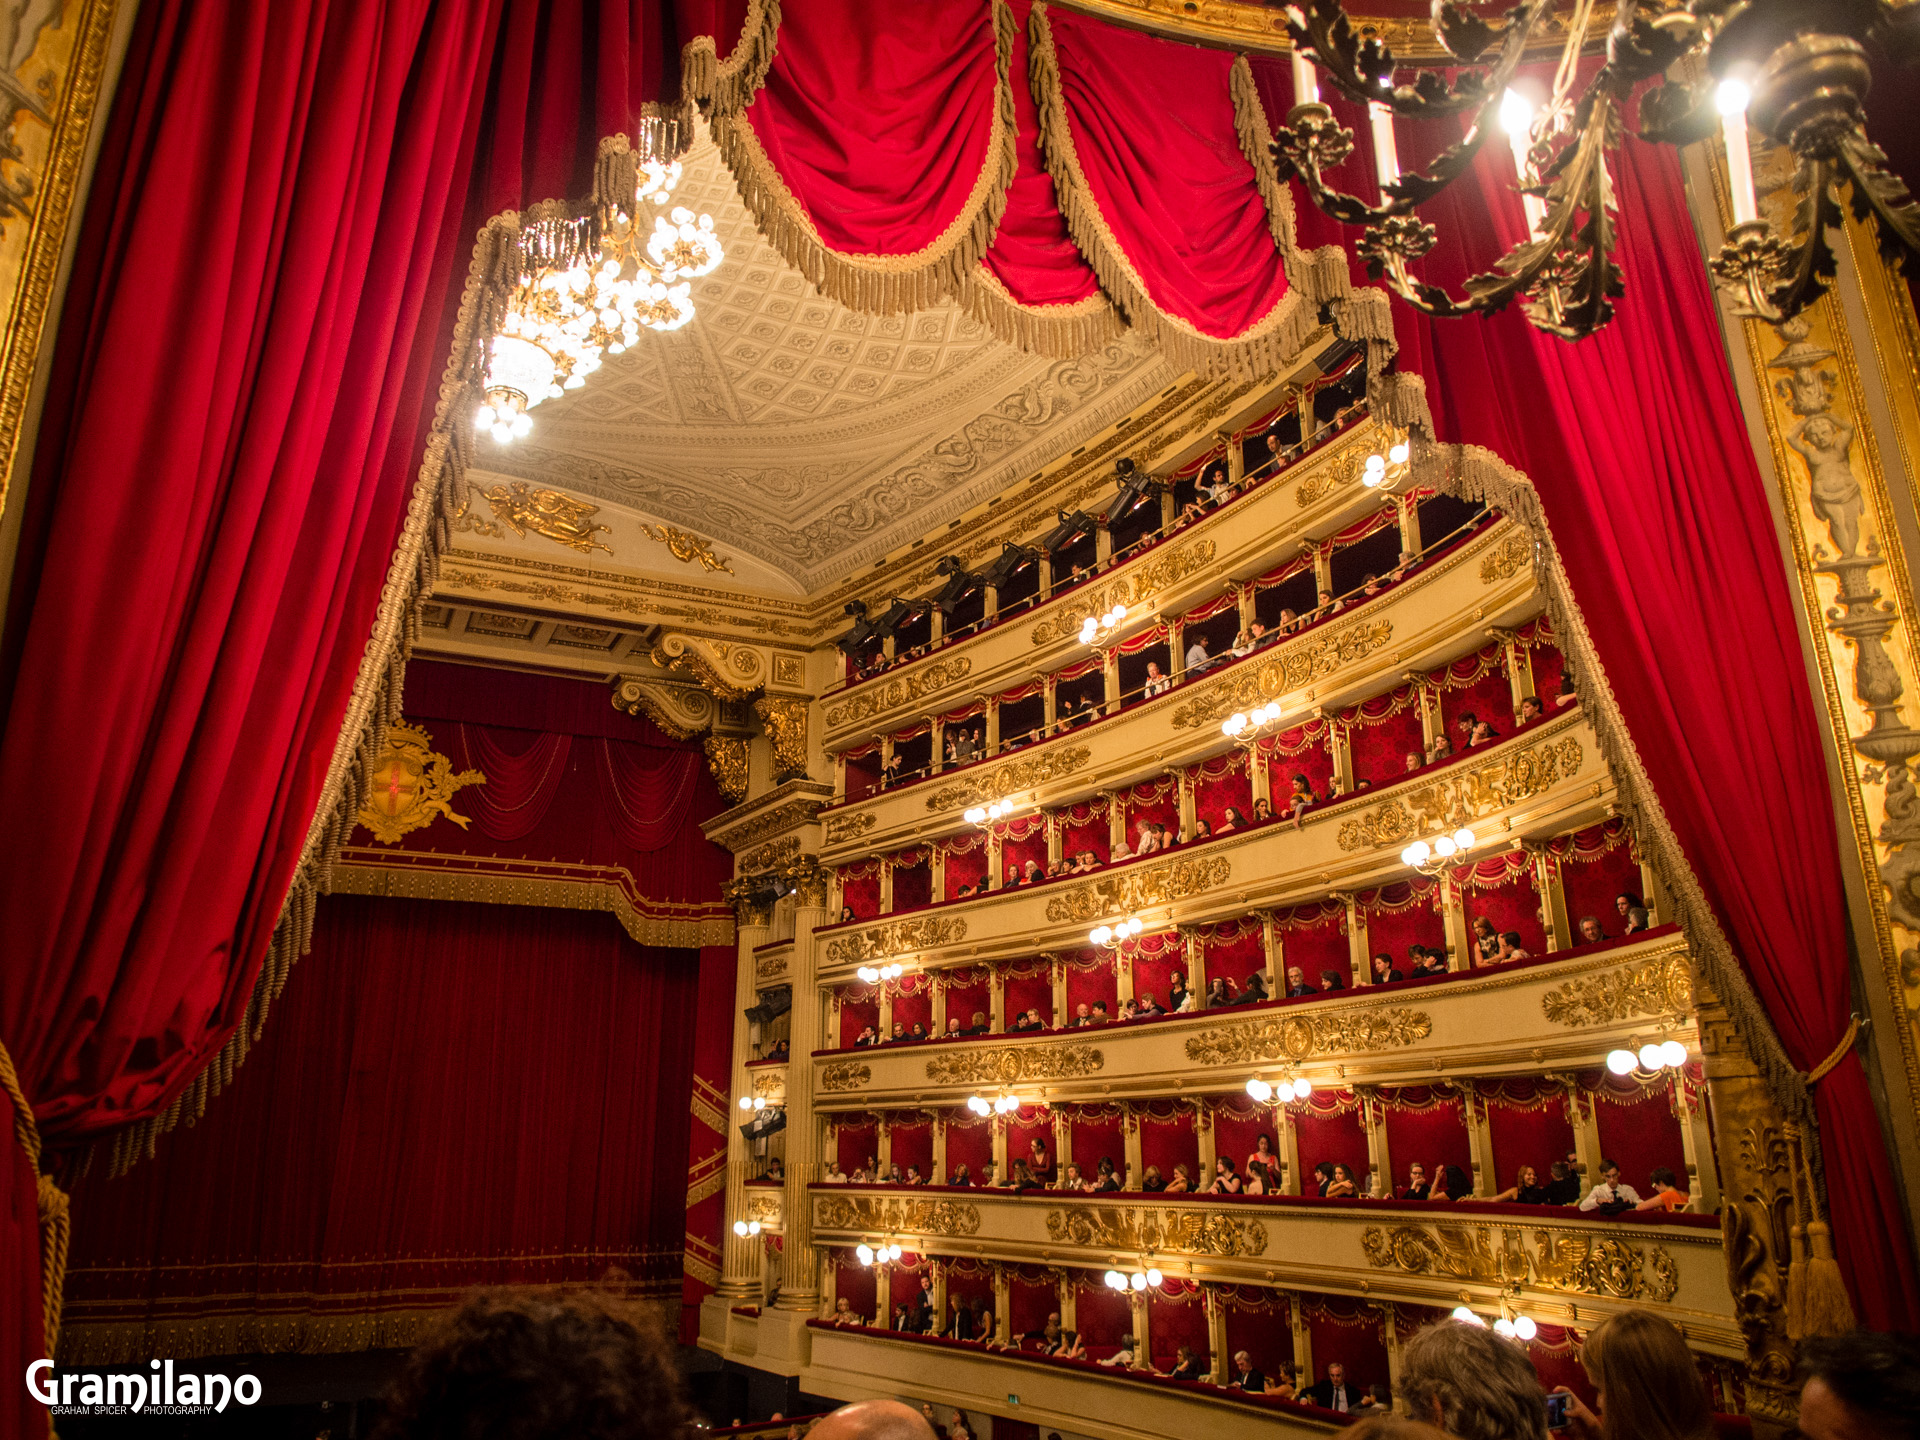 Royal Box, Teatro alla Scala, Milan